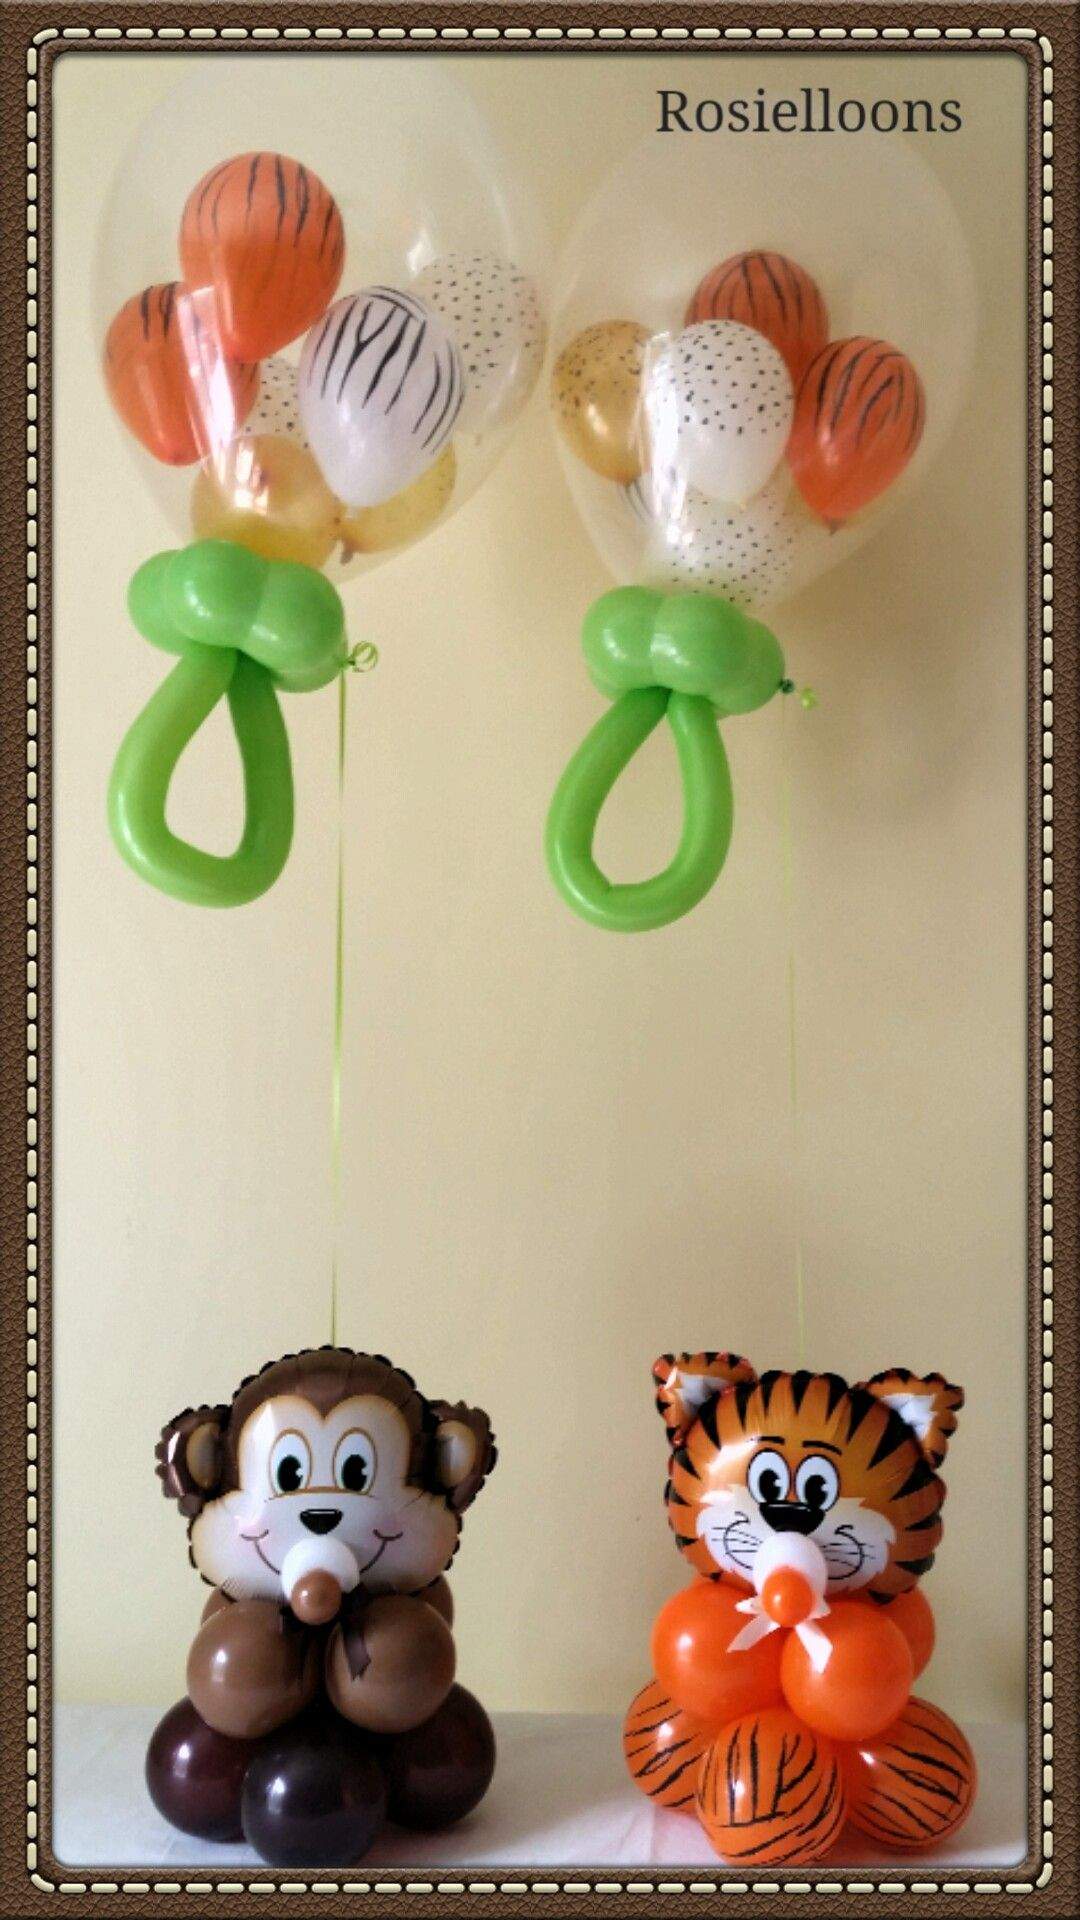 Sweet balloon decorations for a baby shower